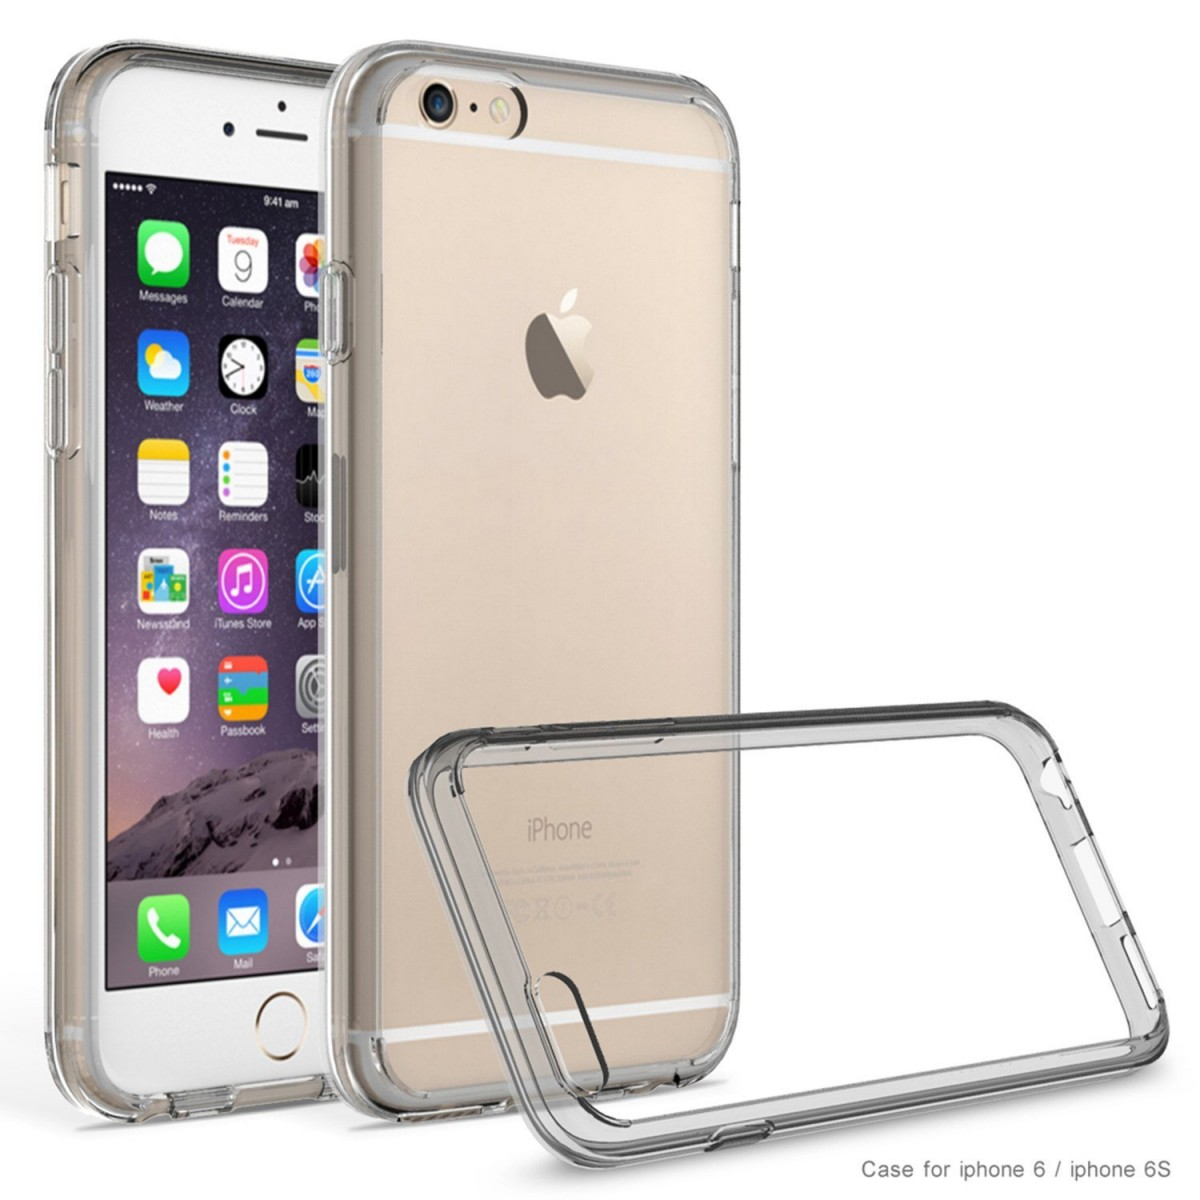 Iphone 6 Caseiphone 6s Case Aumi Crystal Clear Shock Dispersion Bumper Technology Scratch Resistant